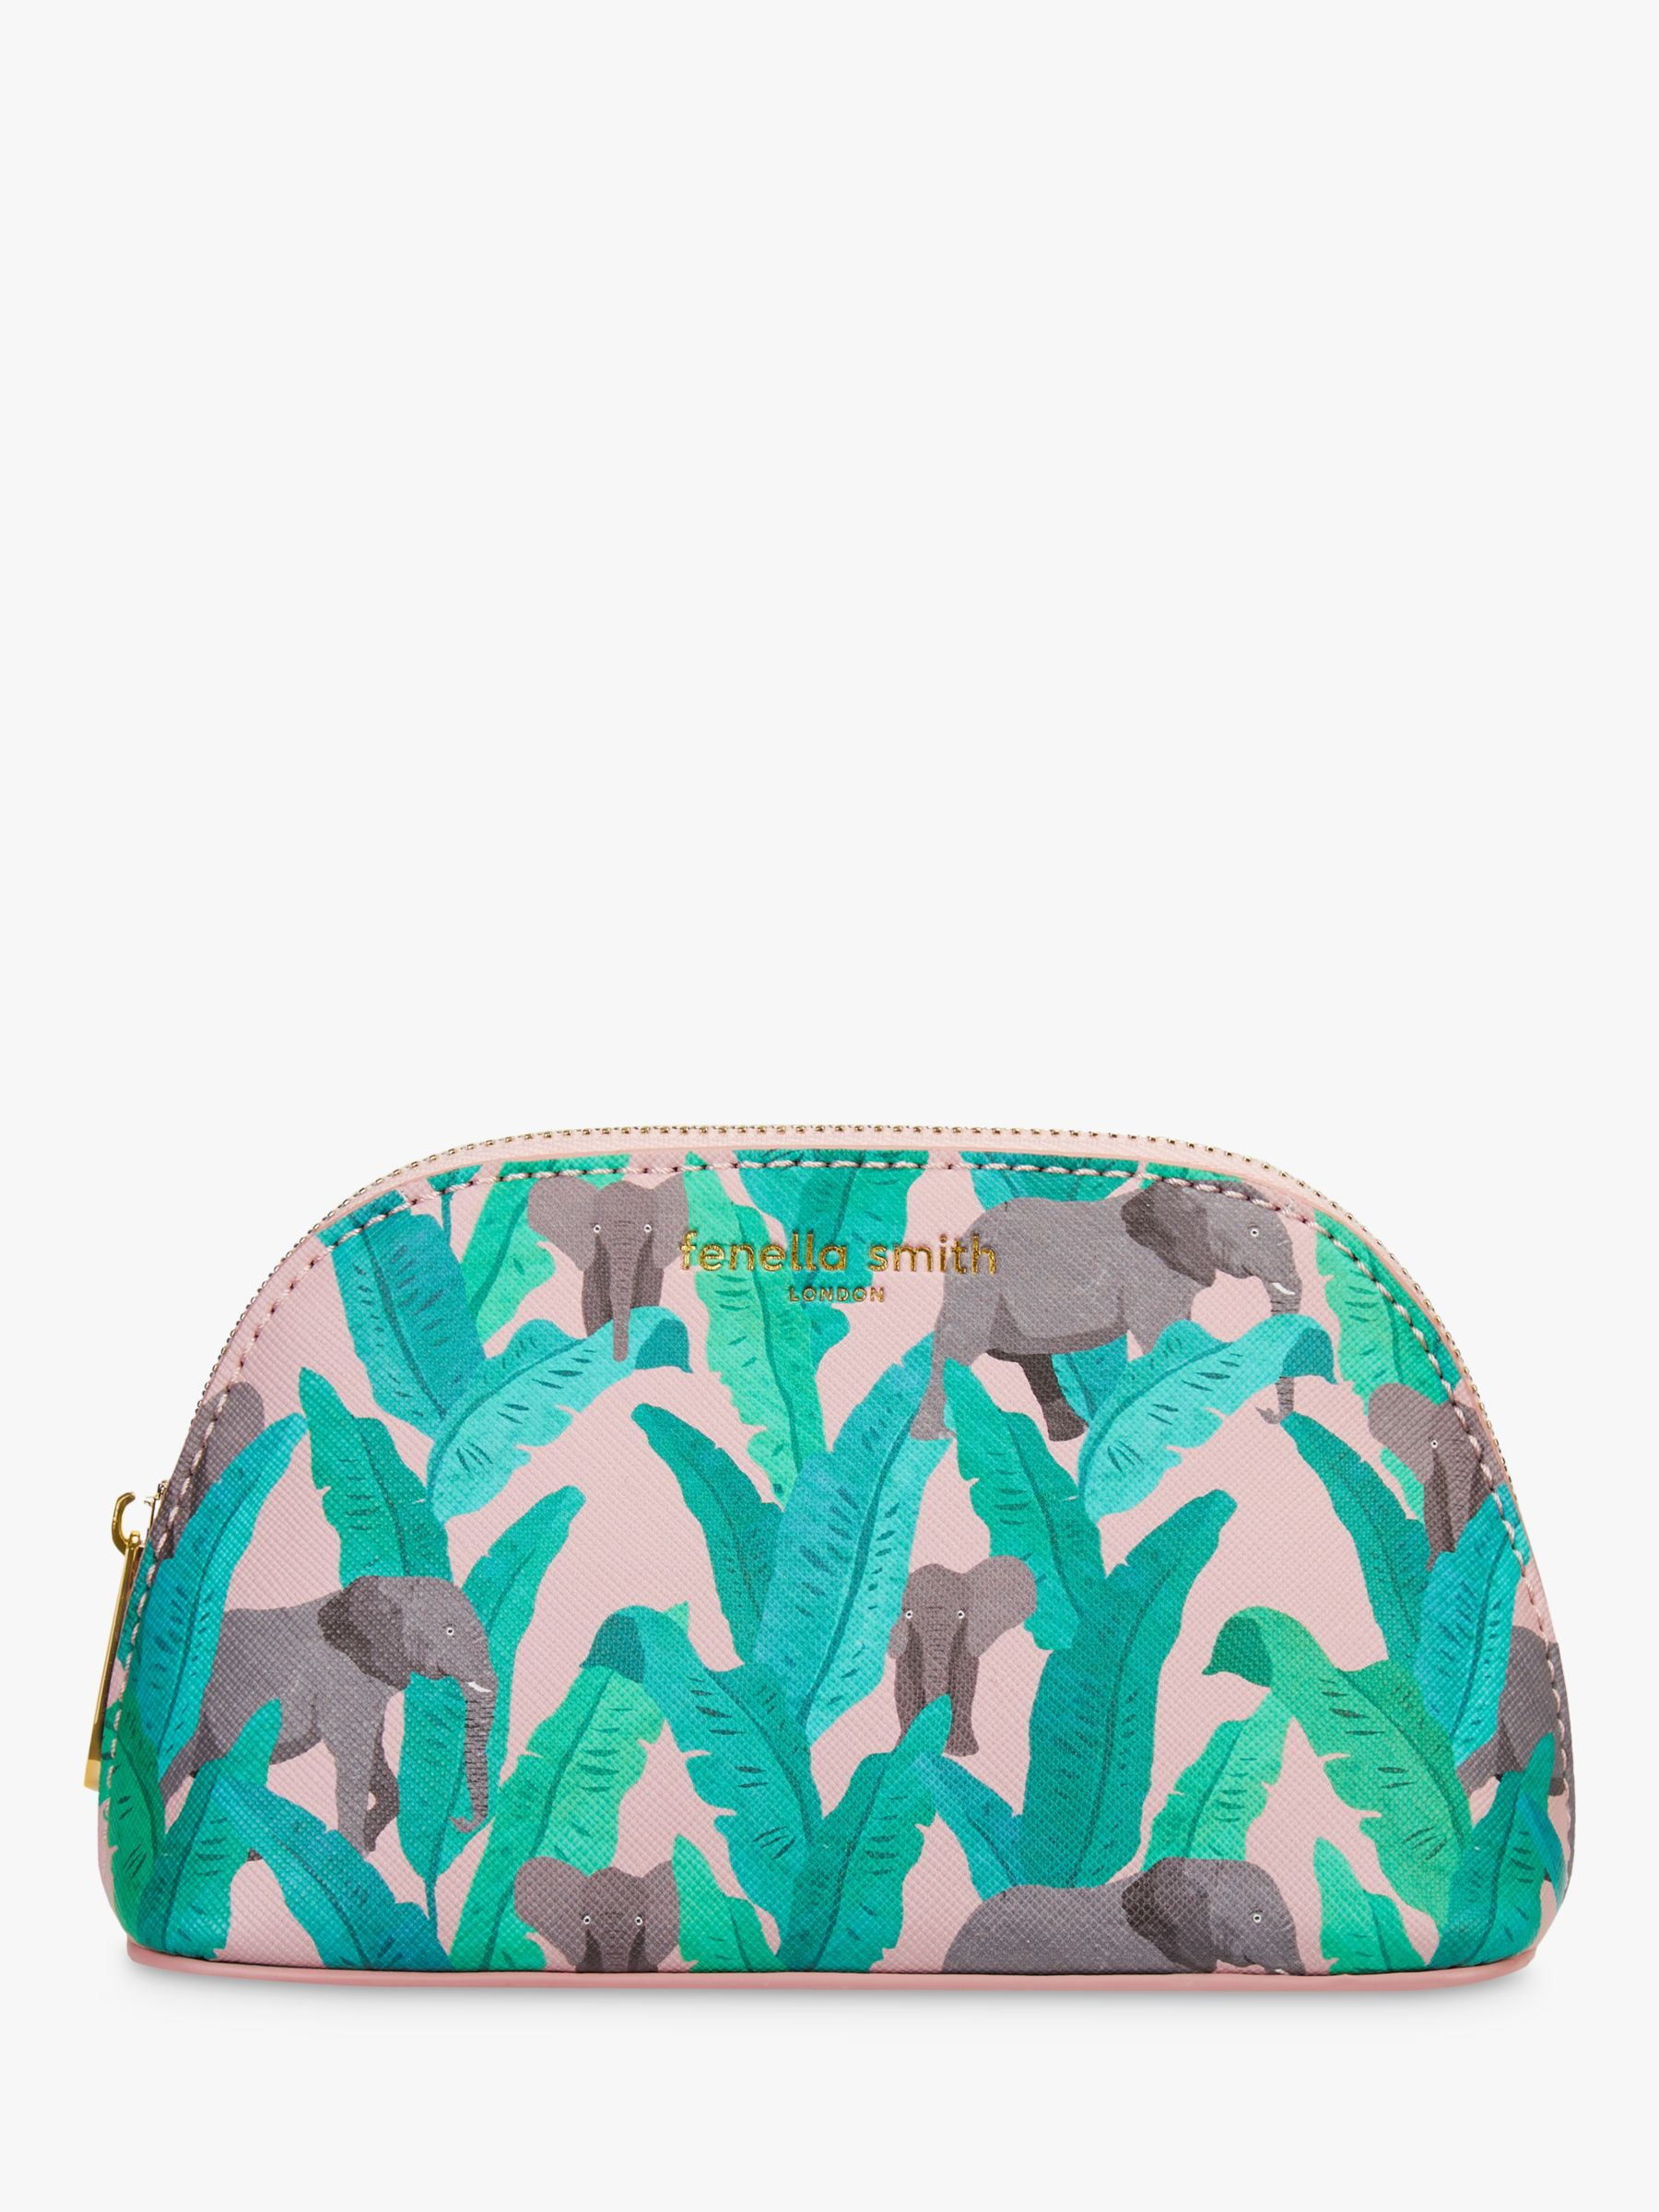 Fenella Smith Fenella Smith Elephant Cosmetics Case